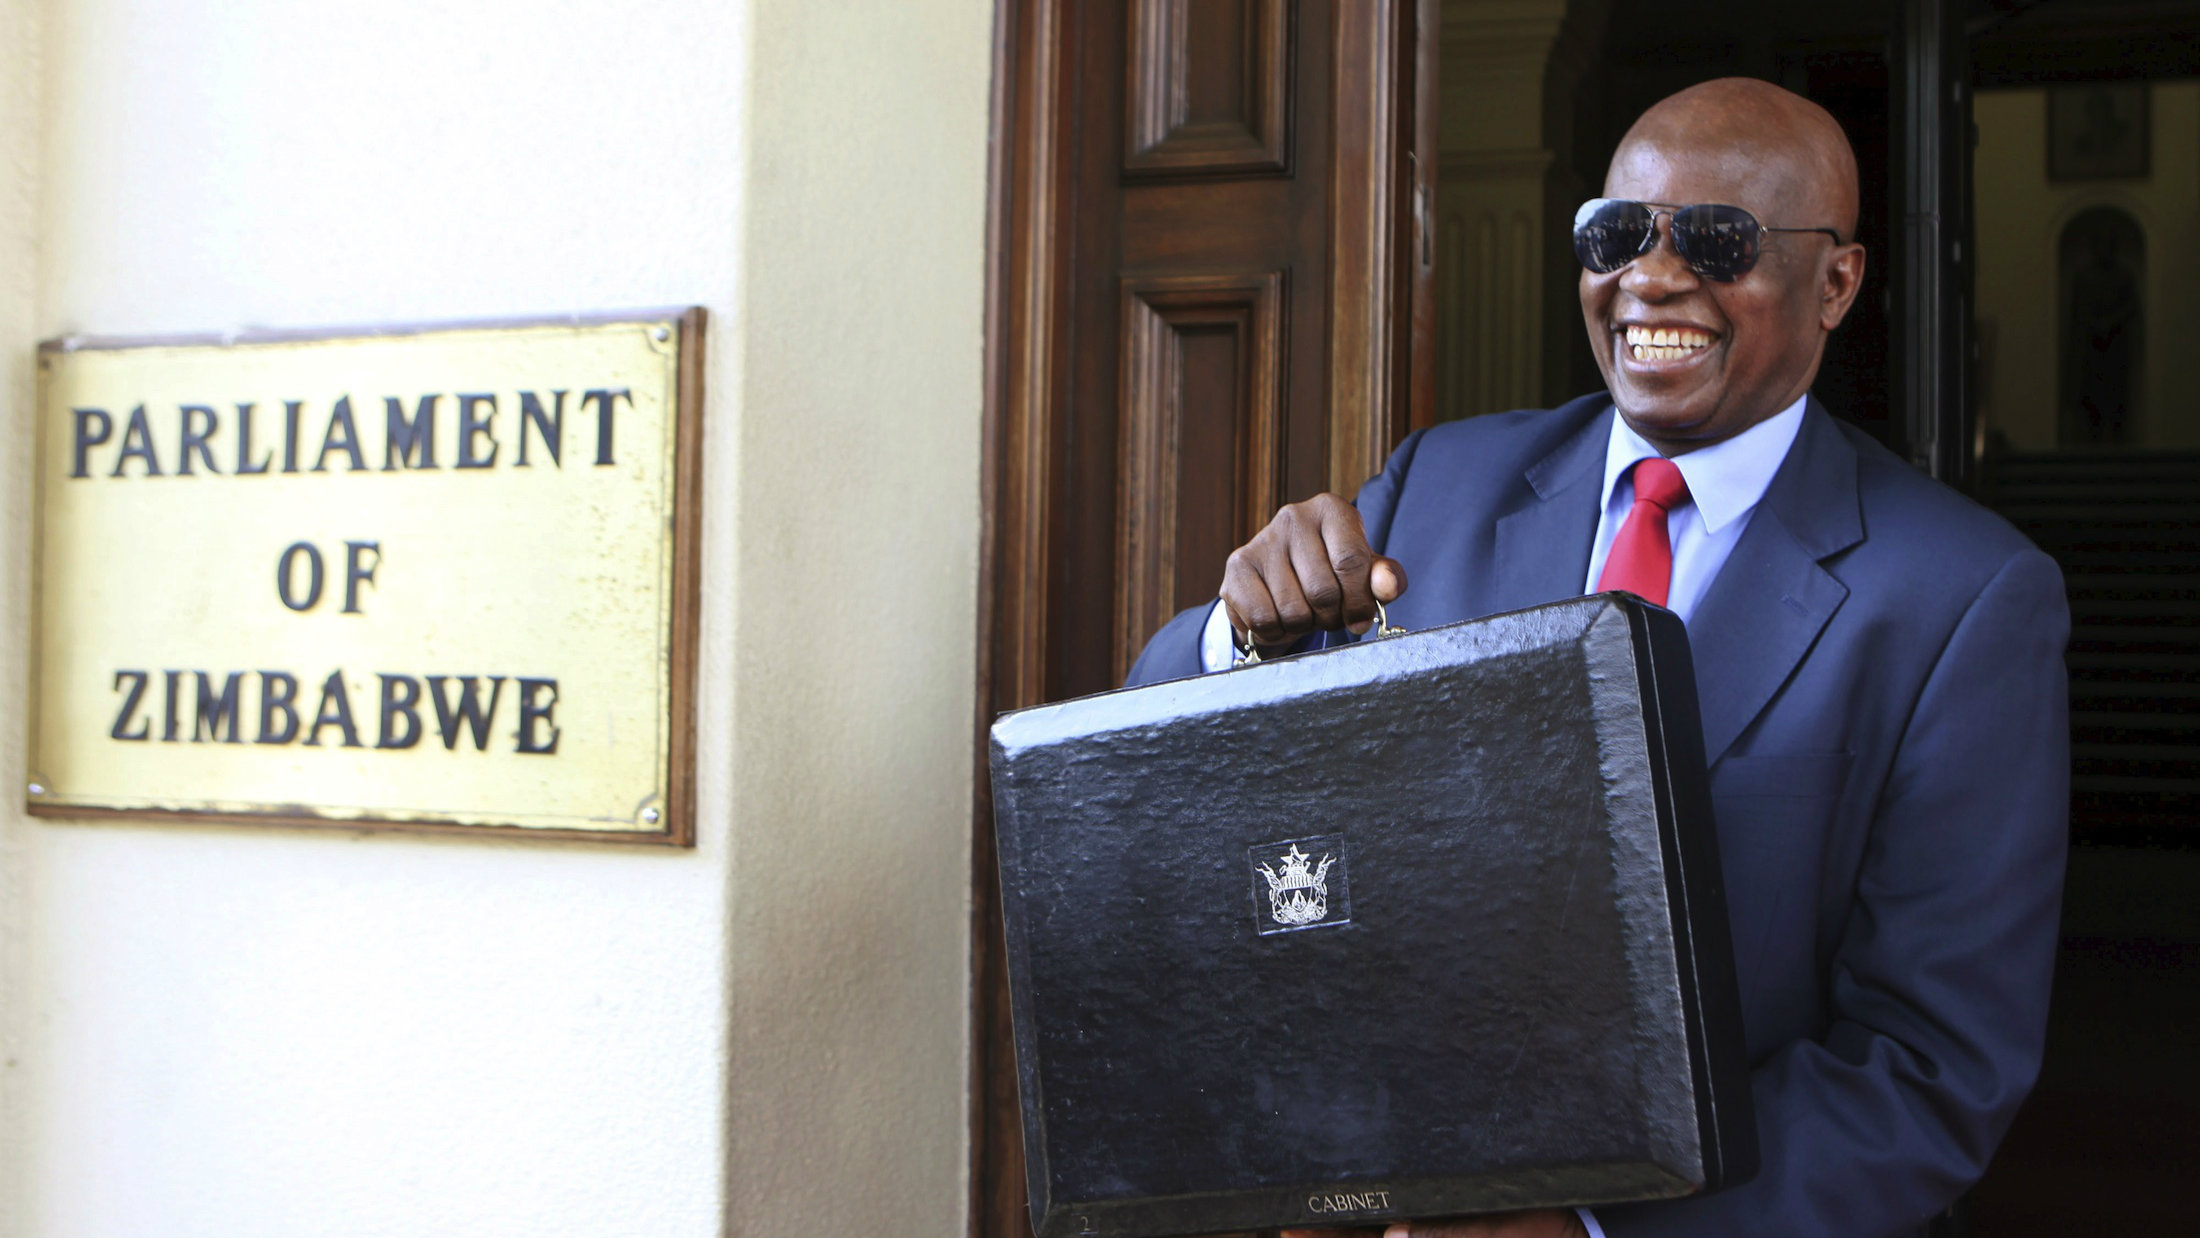 Zimbabwe's finance minister Patrick Chinamasa outside of the parliament building in Harare